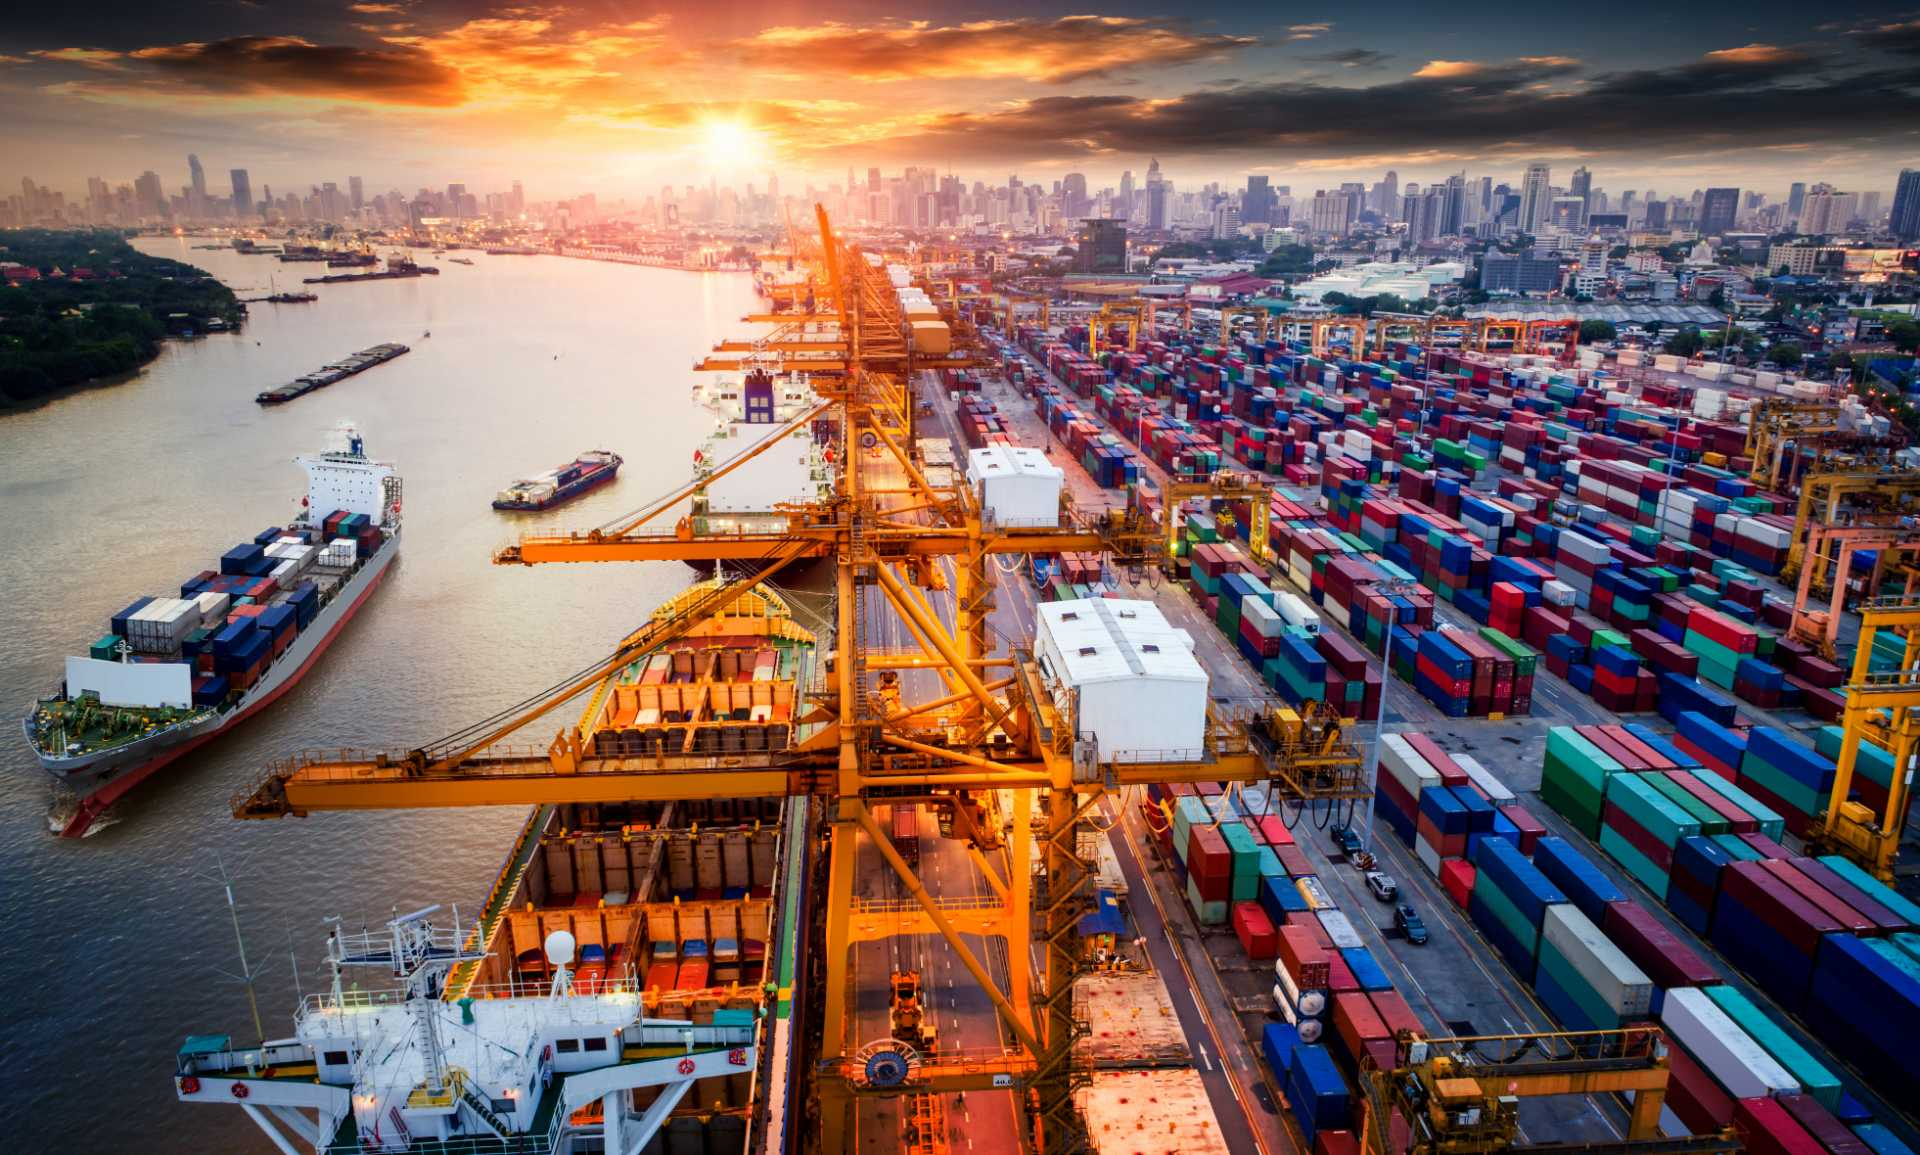 supply chain transparency - Logistics and transportation of Container Cargo ship and Cargo plane with working crane bridge in shipyard at sunrise, logistic import export and transport industry background - image courtesy of Shutterstock